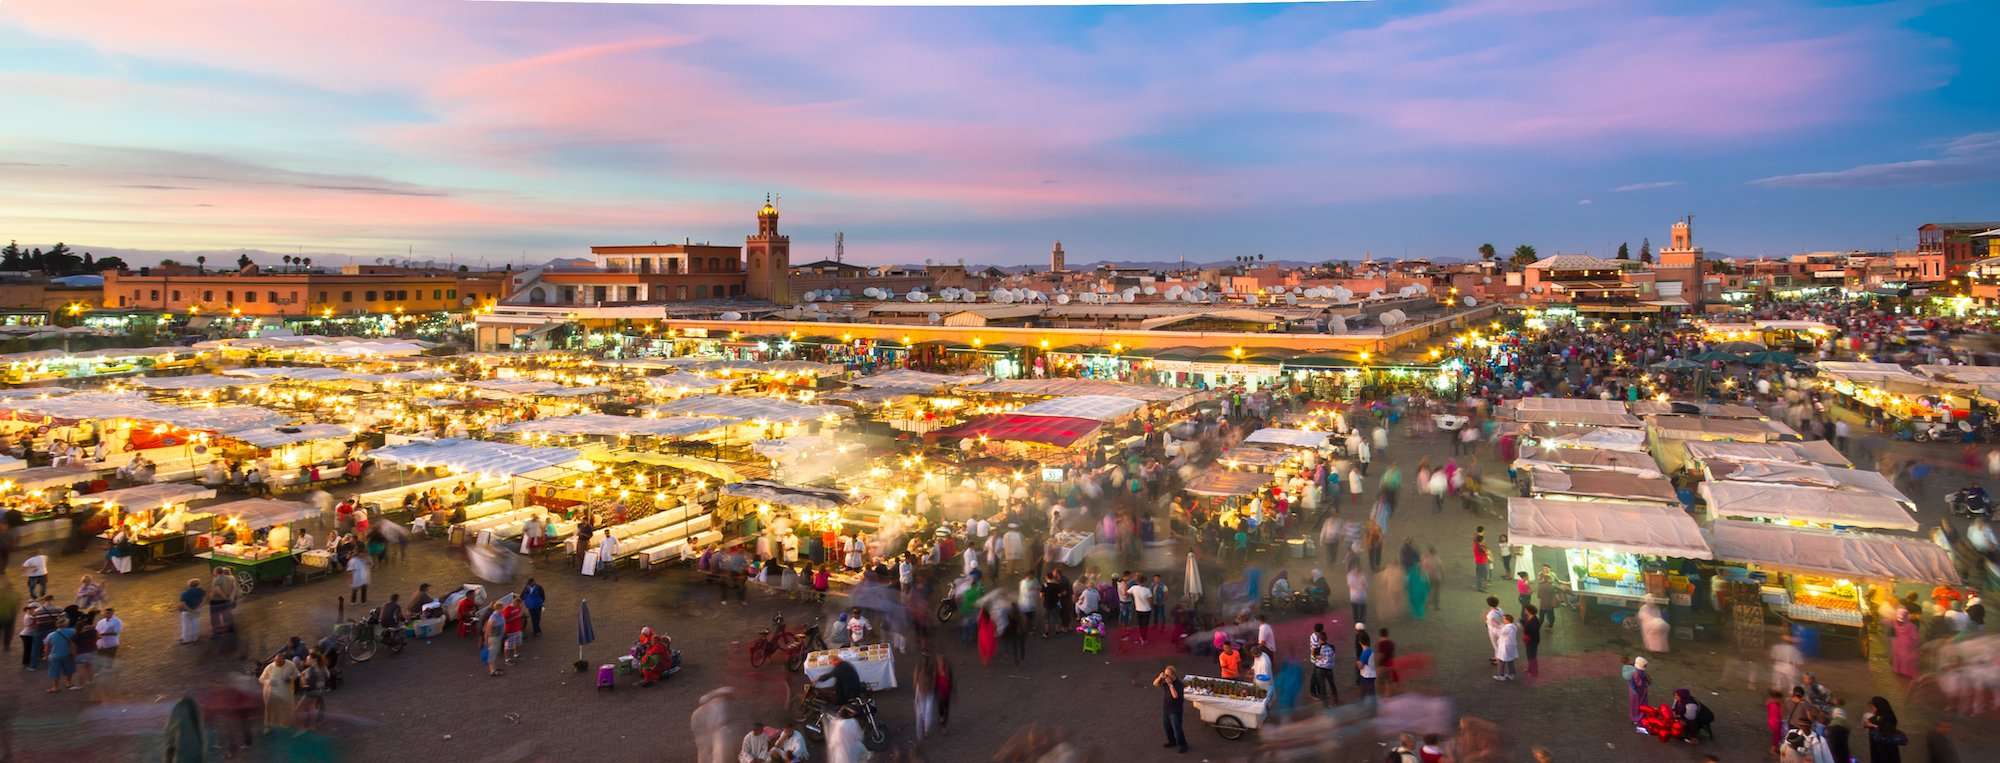 2 Days In Marrakesh Itinerary